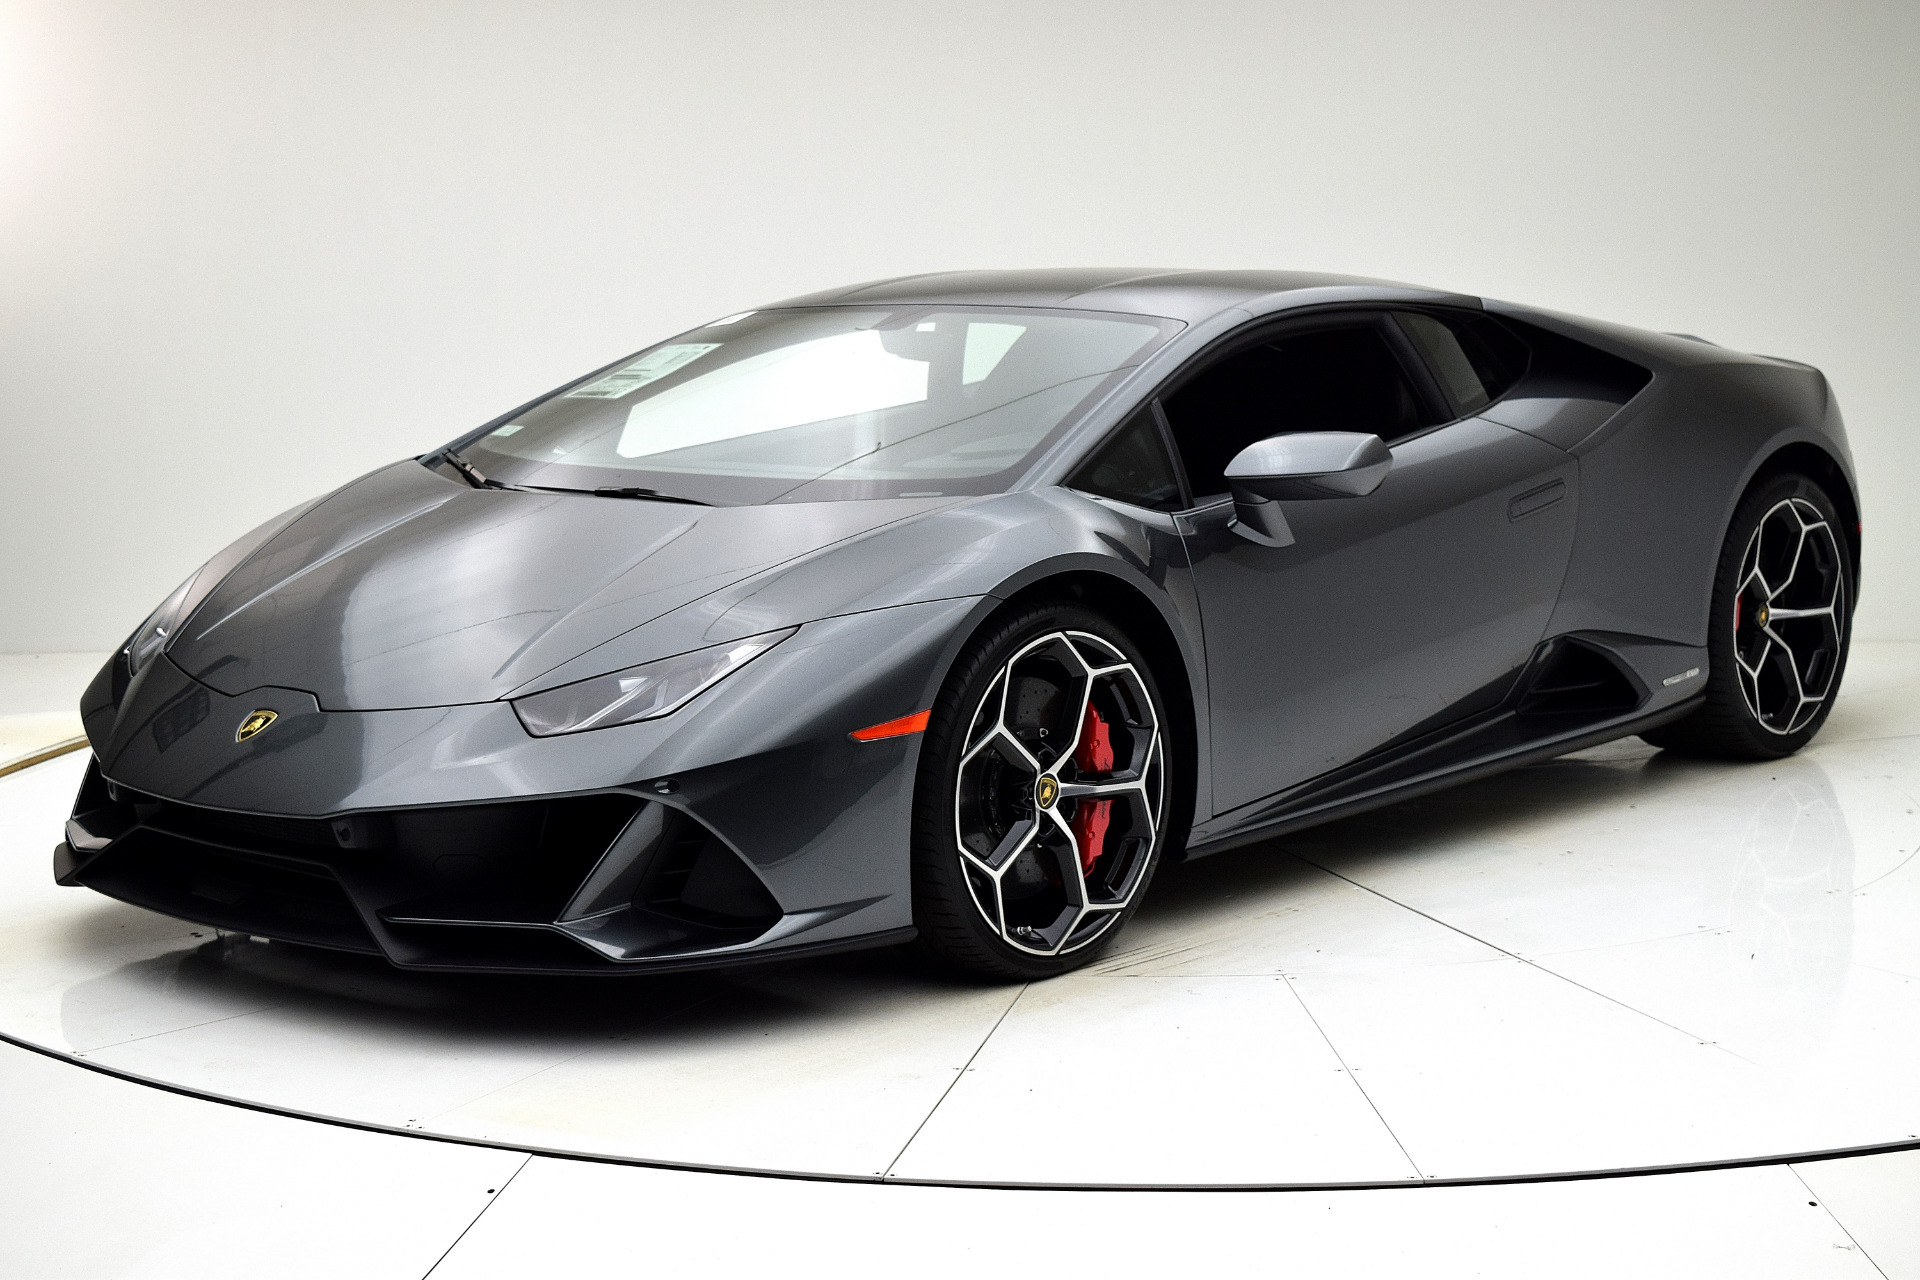 New 2020 Lamborghini Huracan EVO Coupe for sale $293,519 at F.C. Kerbeck Lamborghini Palmyra N.J. in Palmyra NJ 08065 2